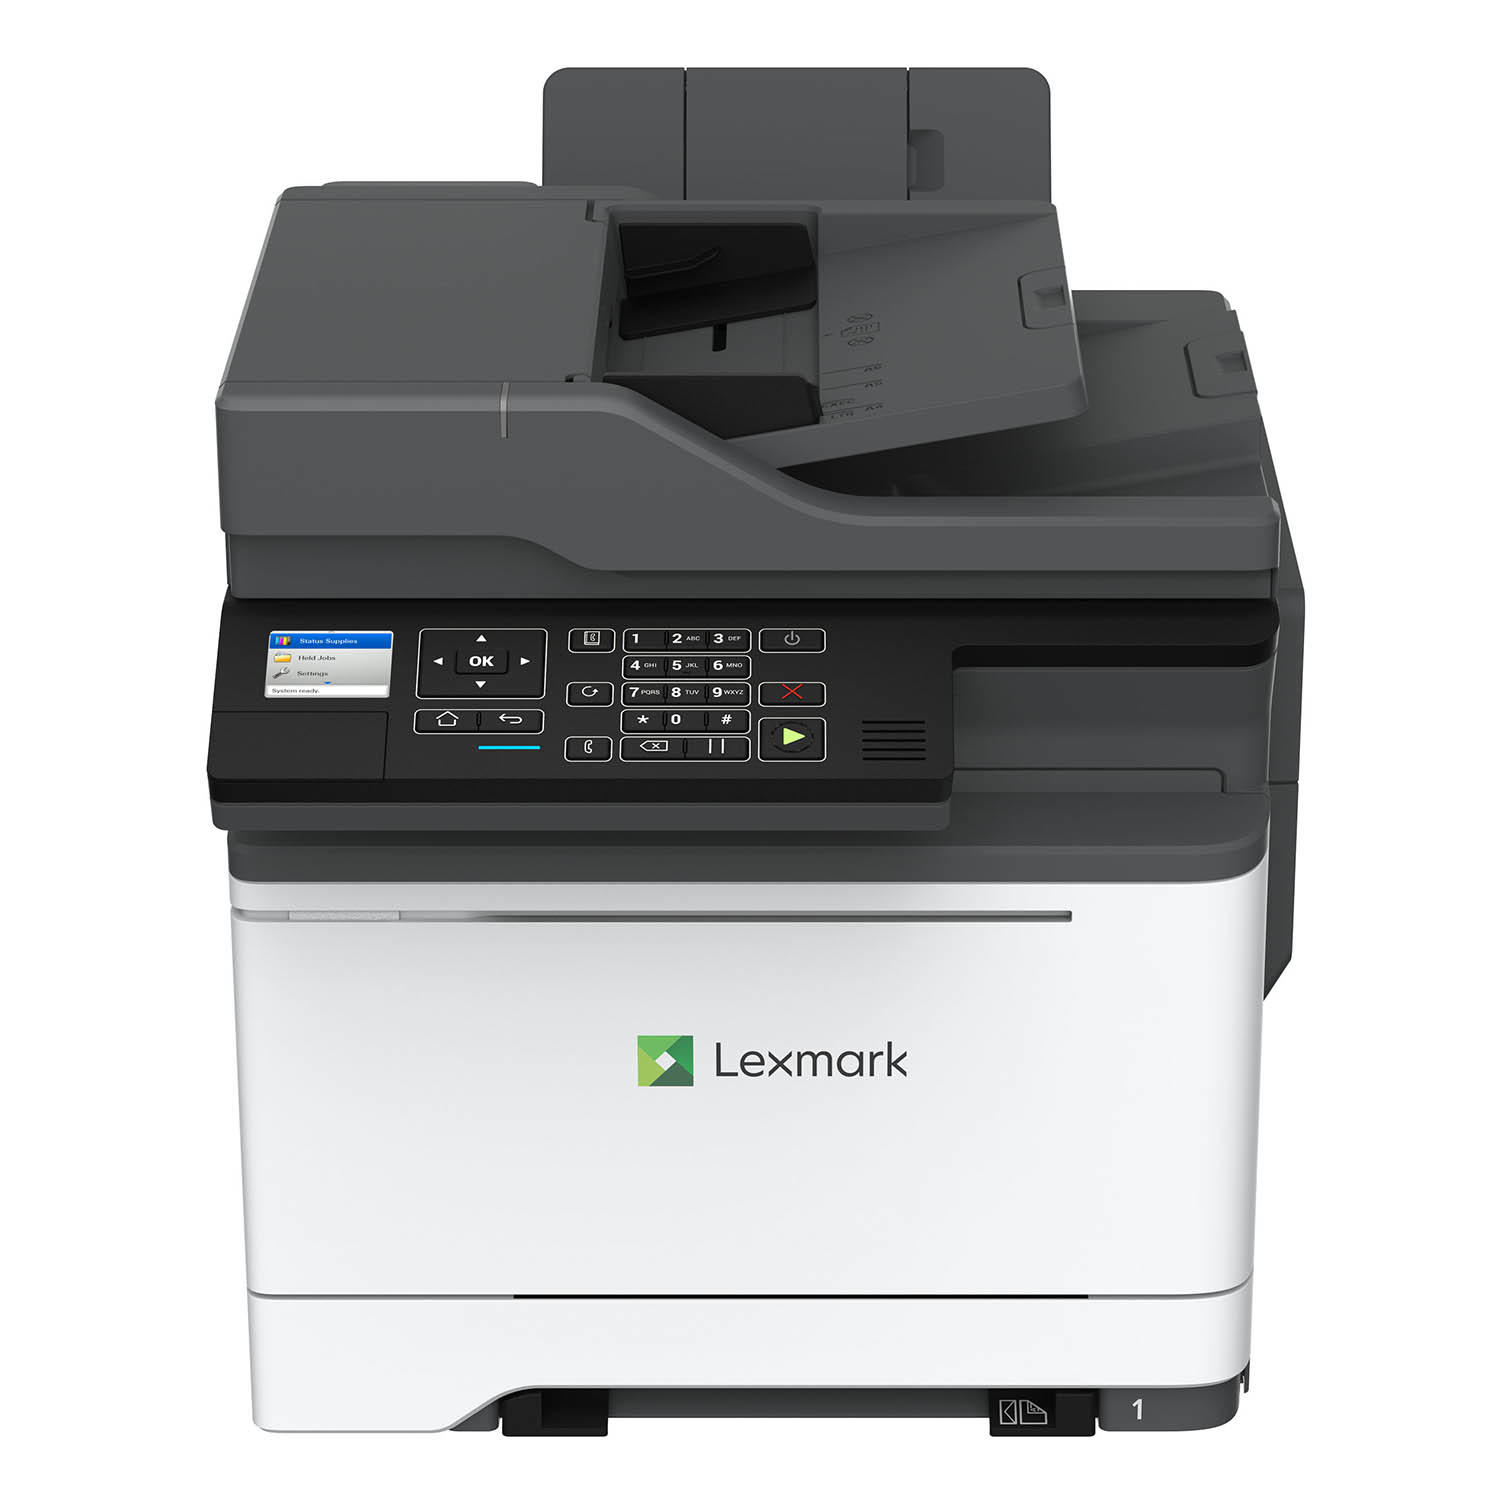 Lexmark MC2425adw All-in-One Color Laser Printer with Built-in WiFi , Replace CX417DE